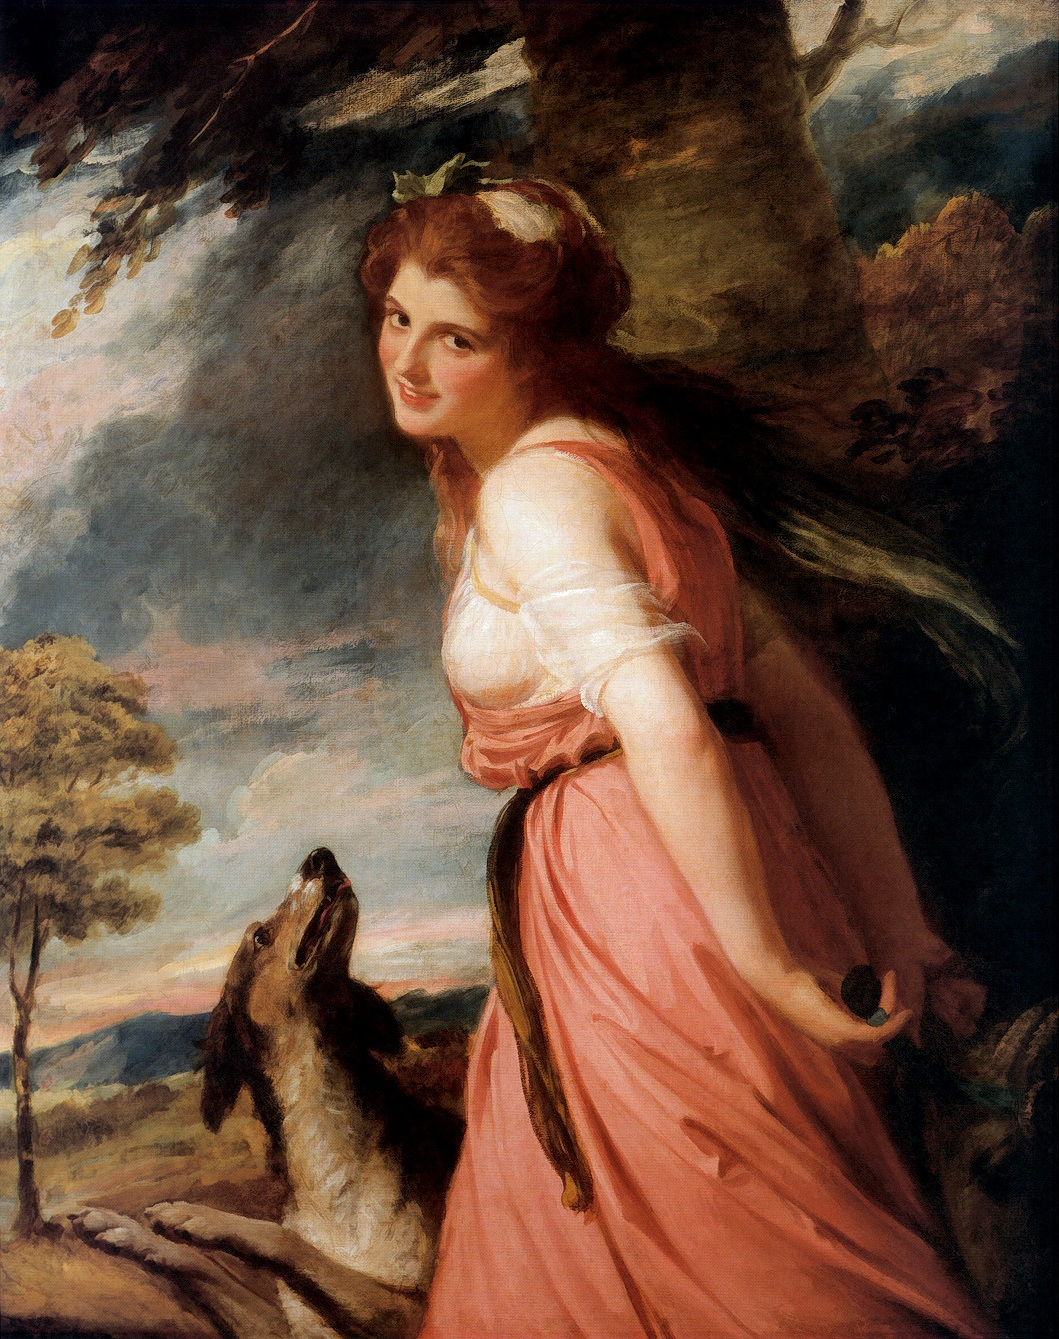 https://i1.wp.com/upload.wikimedia.org/wikipedia/commons/5/5c/George_Romney_-_Lady_Hamilton_%28as_a_Bacchante%29_3.jpg